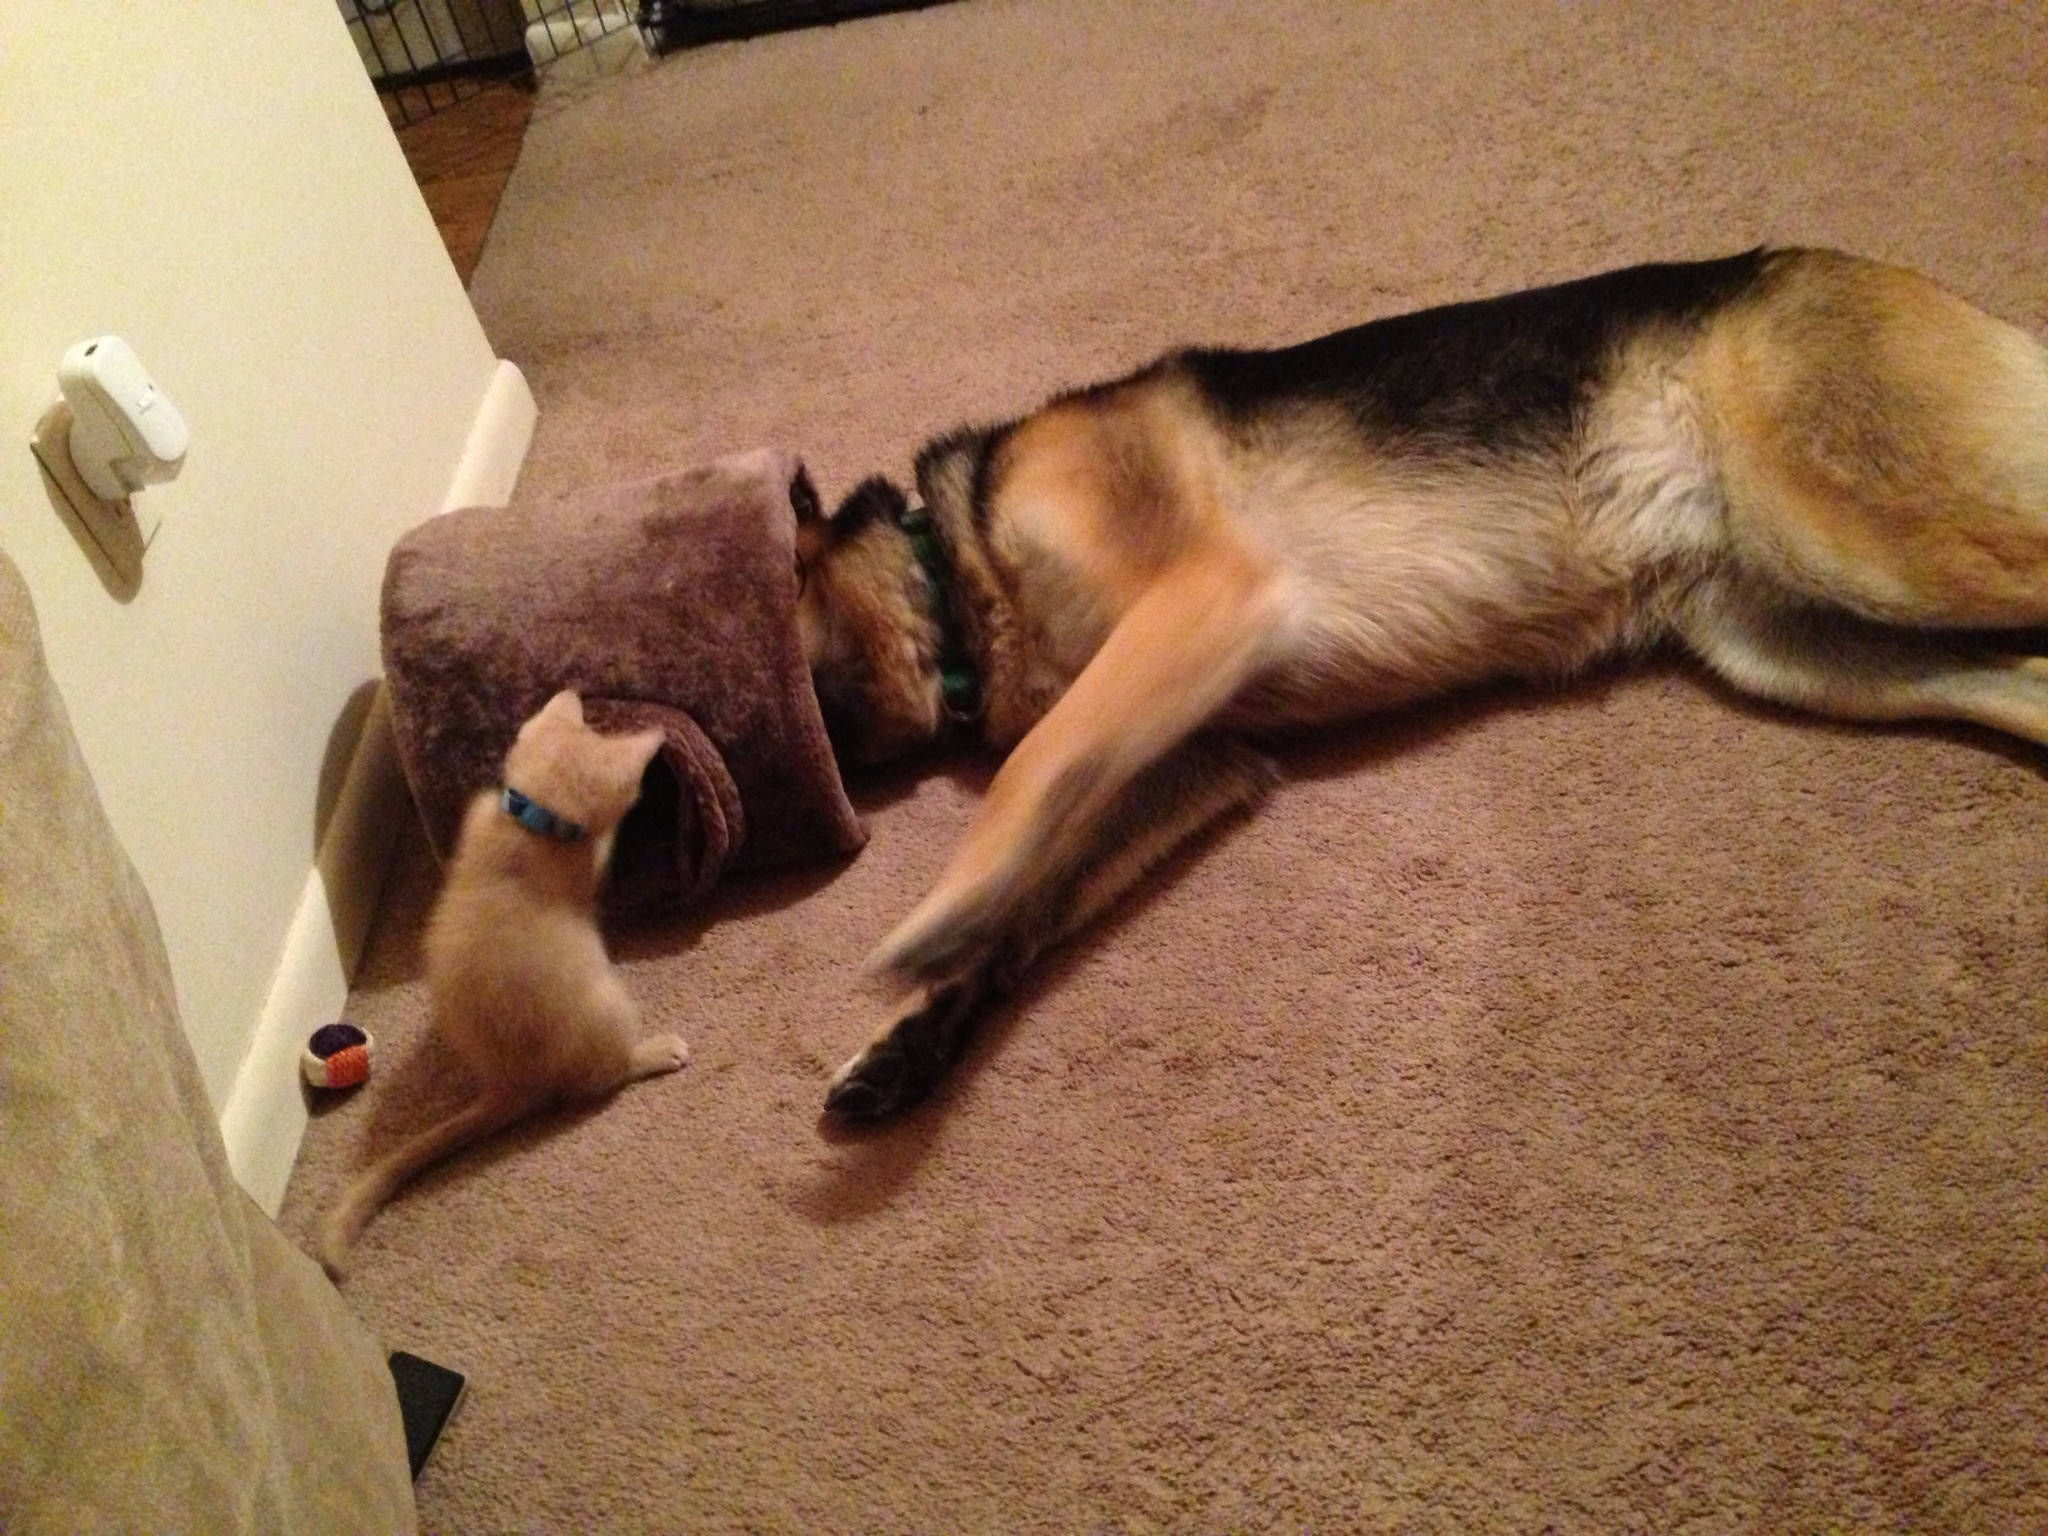 Cute Dog Stretching Wallpaper 18 Of The Most Insanely Awkward German Shepherd Sleeping